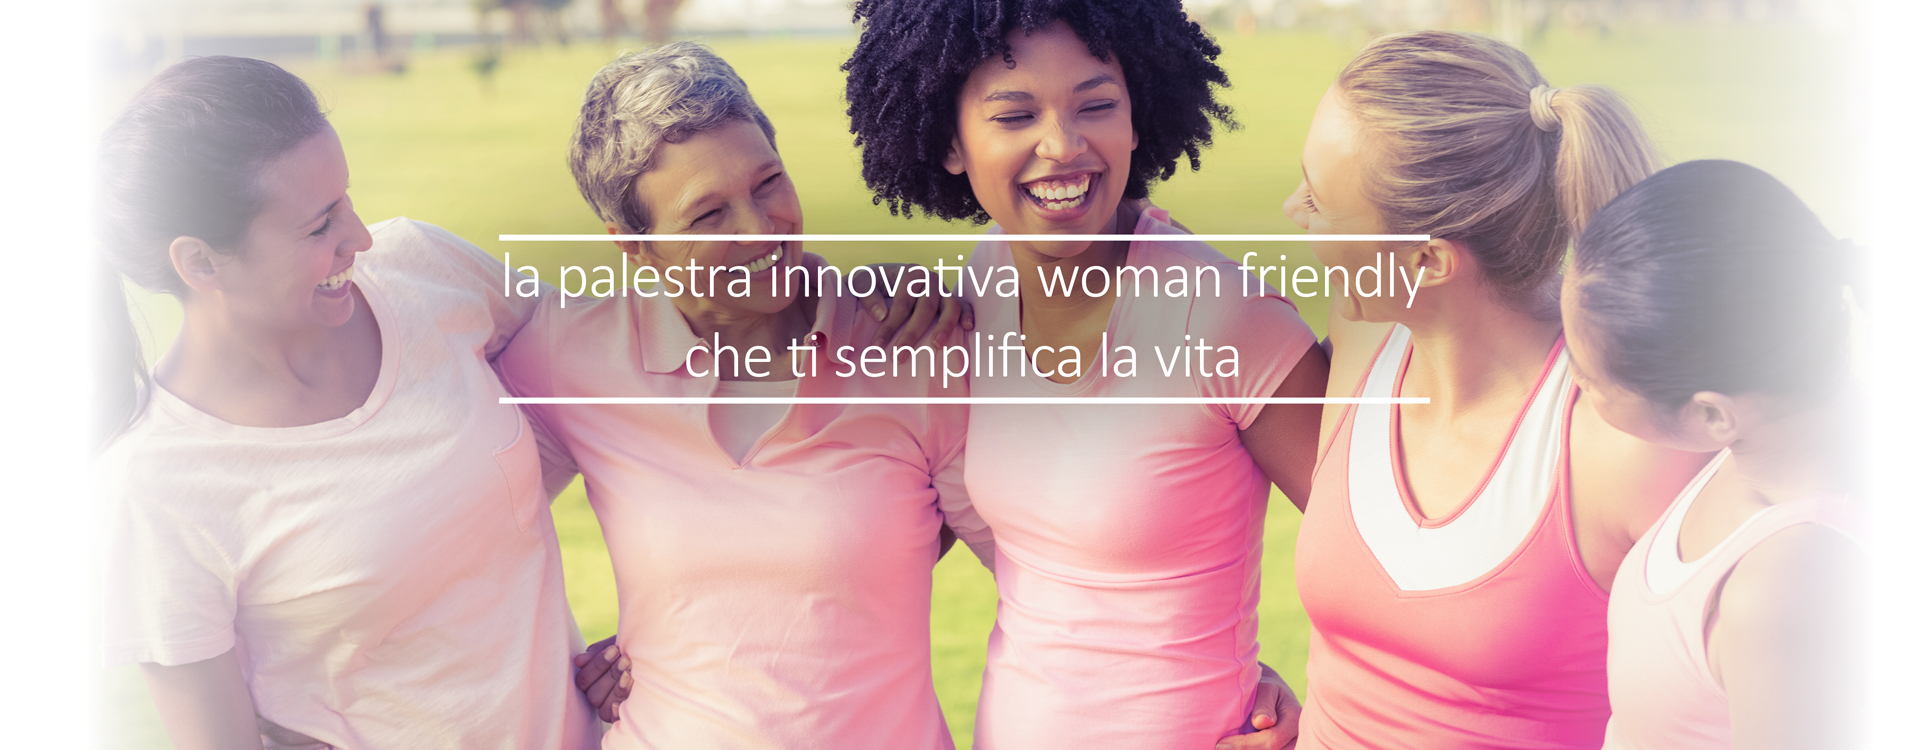 slide-la-palestra-innovativa-women-friendly